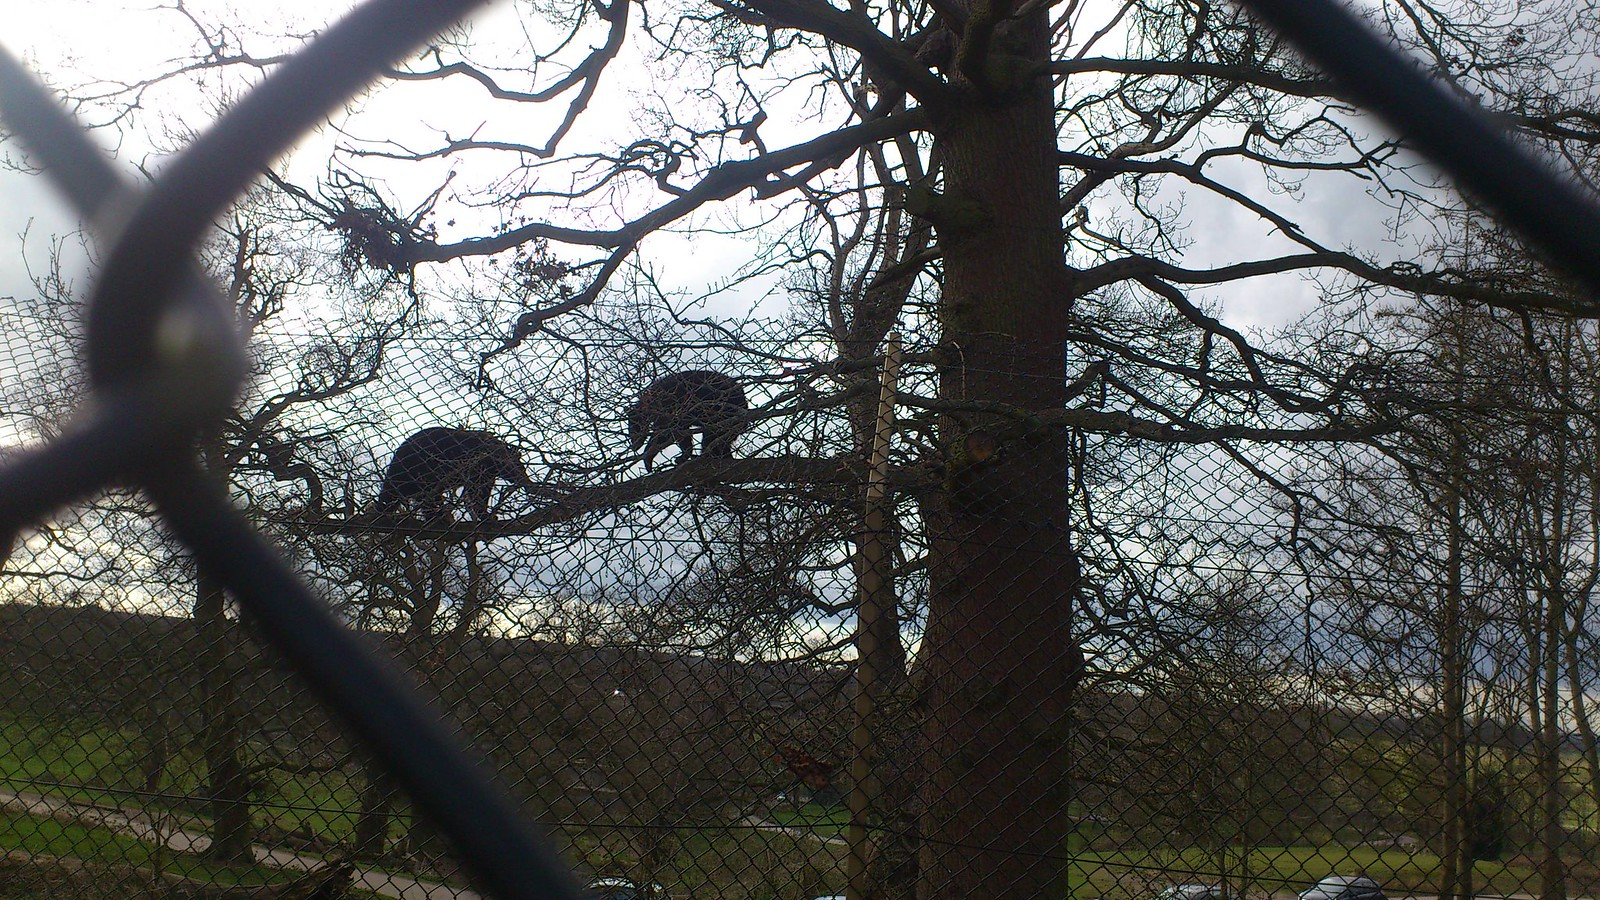 Black Bears (Bow Brickhill to Woburn Sands)